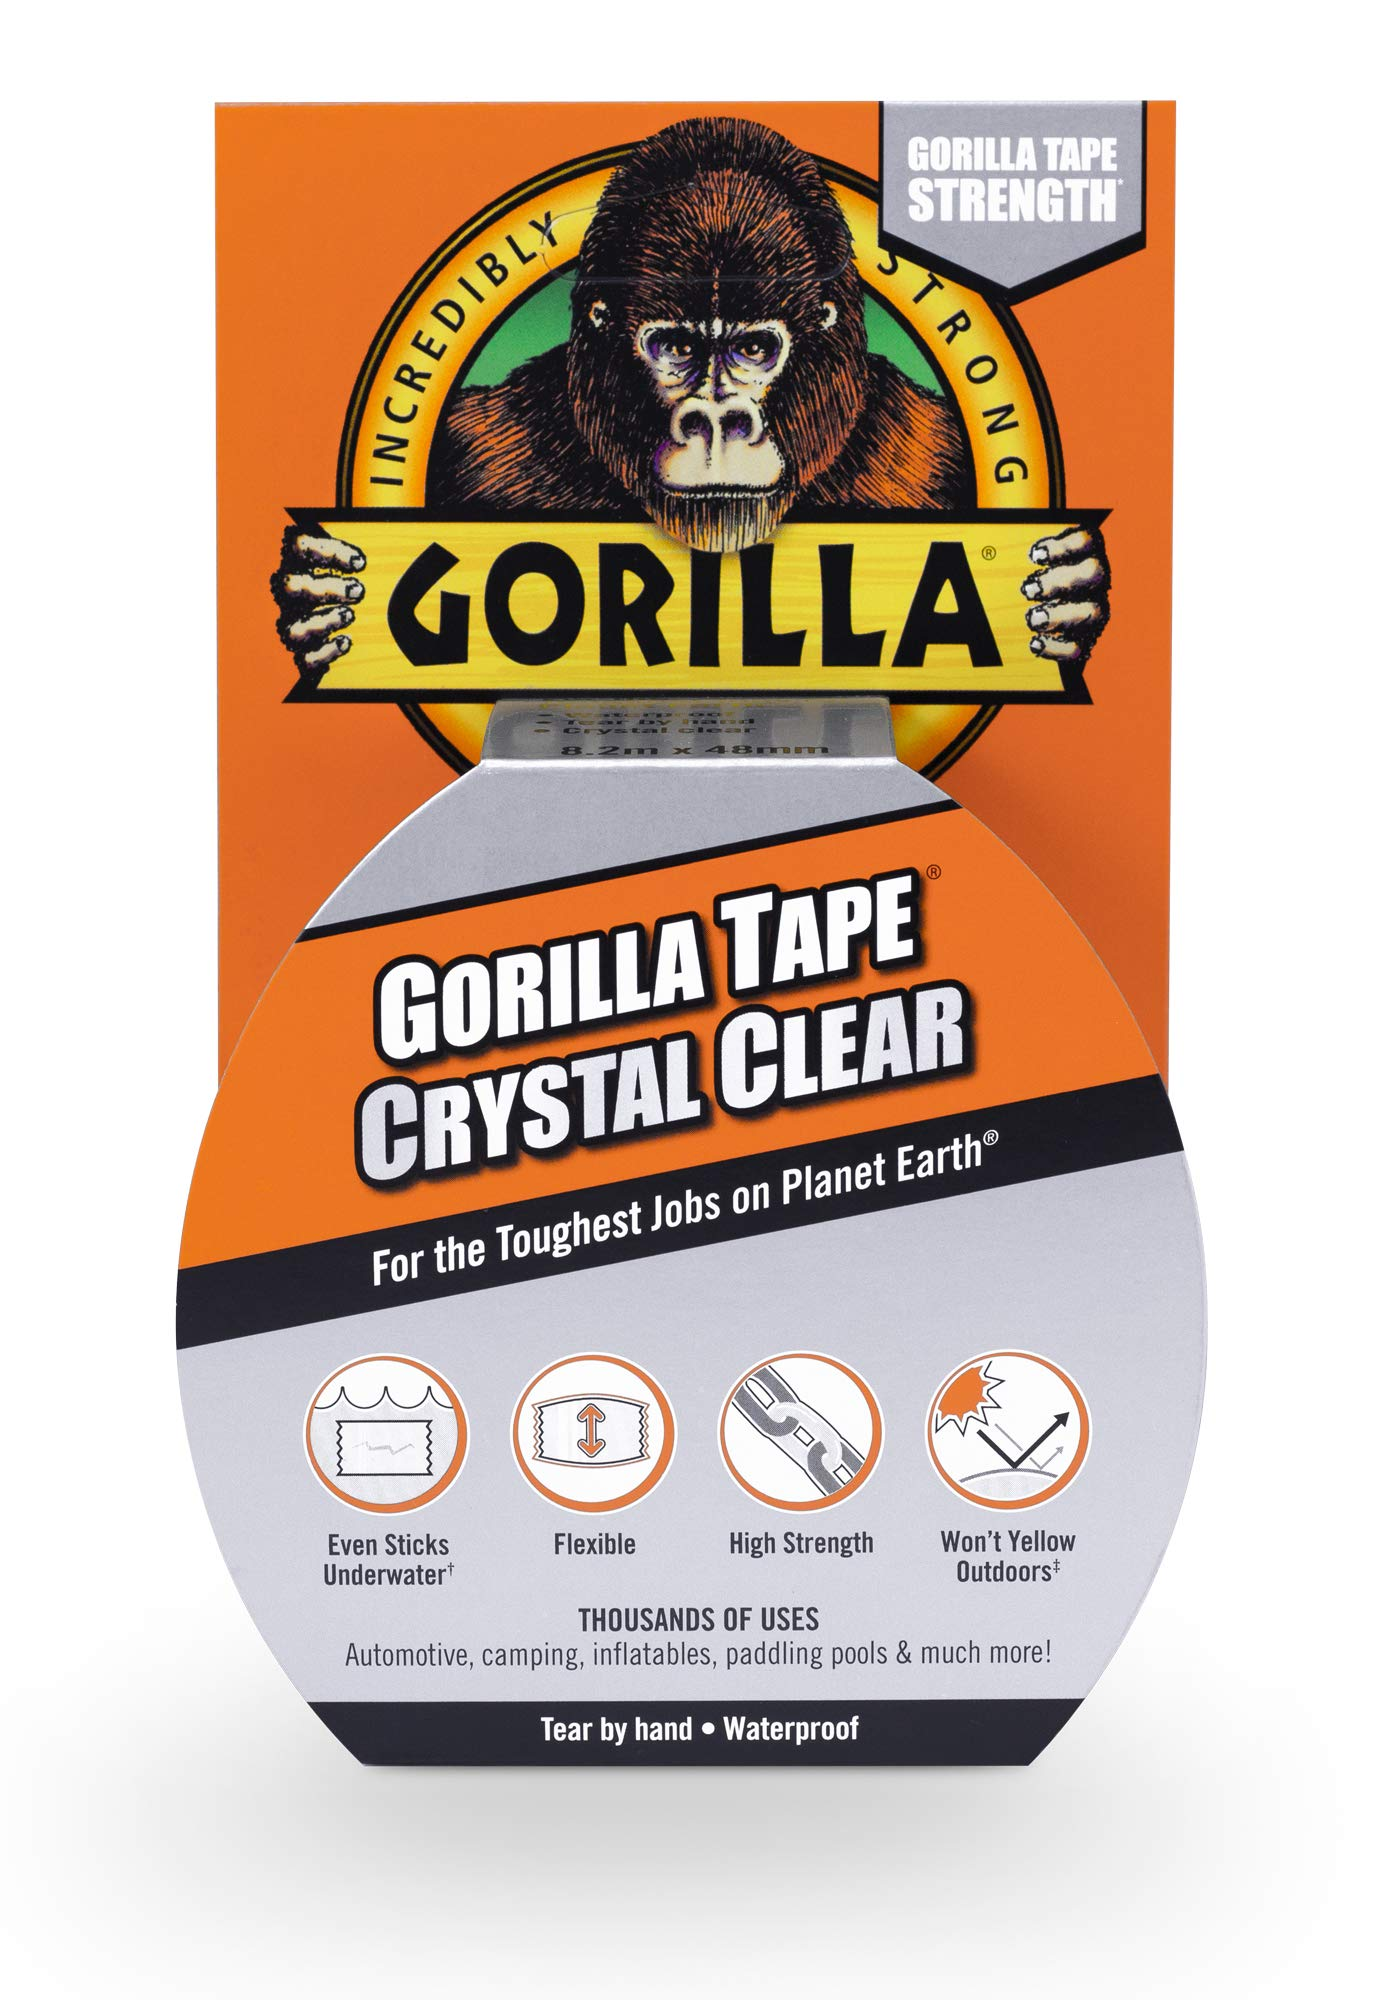 "Gorilla Crystal Clear Duct Tape, 1.88"" x 9 yd, Clear 1 Crystal Clear Gorilla Duct Tape is a heavy-duty, all-purpose tape that is weatherproof, air tight, crystal clear, and can be torn by hand Crystal Clear Gorilla Duct Tape is ideal for thousands of uses and sticks to almost everything-the uses are virtually endless It can be used for patching smooth surfaces, it sticks to rough & uneven surfaces and can even be used to seal and protect surfaces"